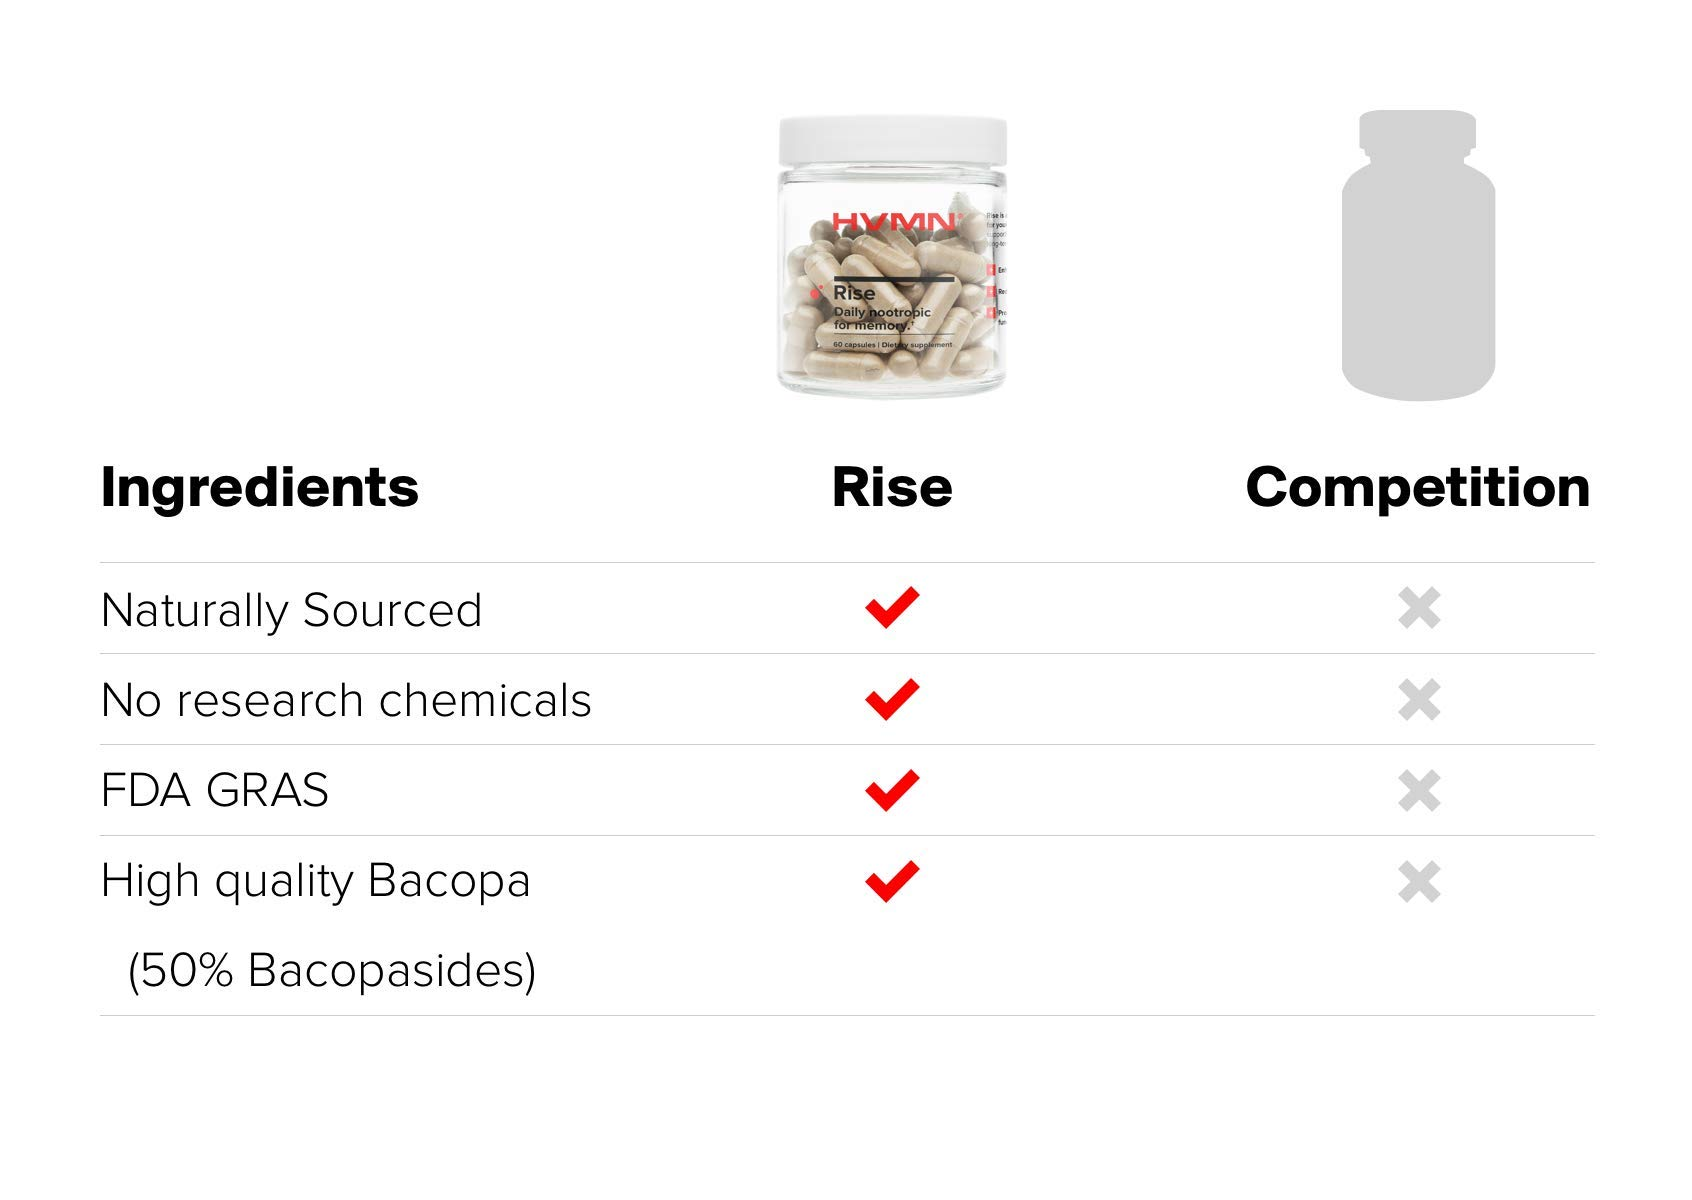 HVMN Rise - Daily Nootropic & Memory Supplement - Bacopa Monnieri, Natural Ashwaghanda Extract, CDP Choline, Citicoline Supplement by HVMN (Image #6)